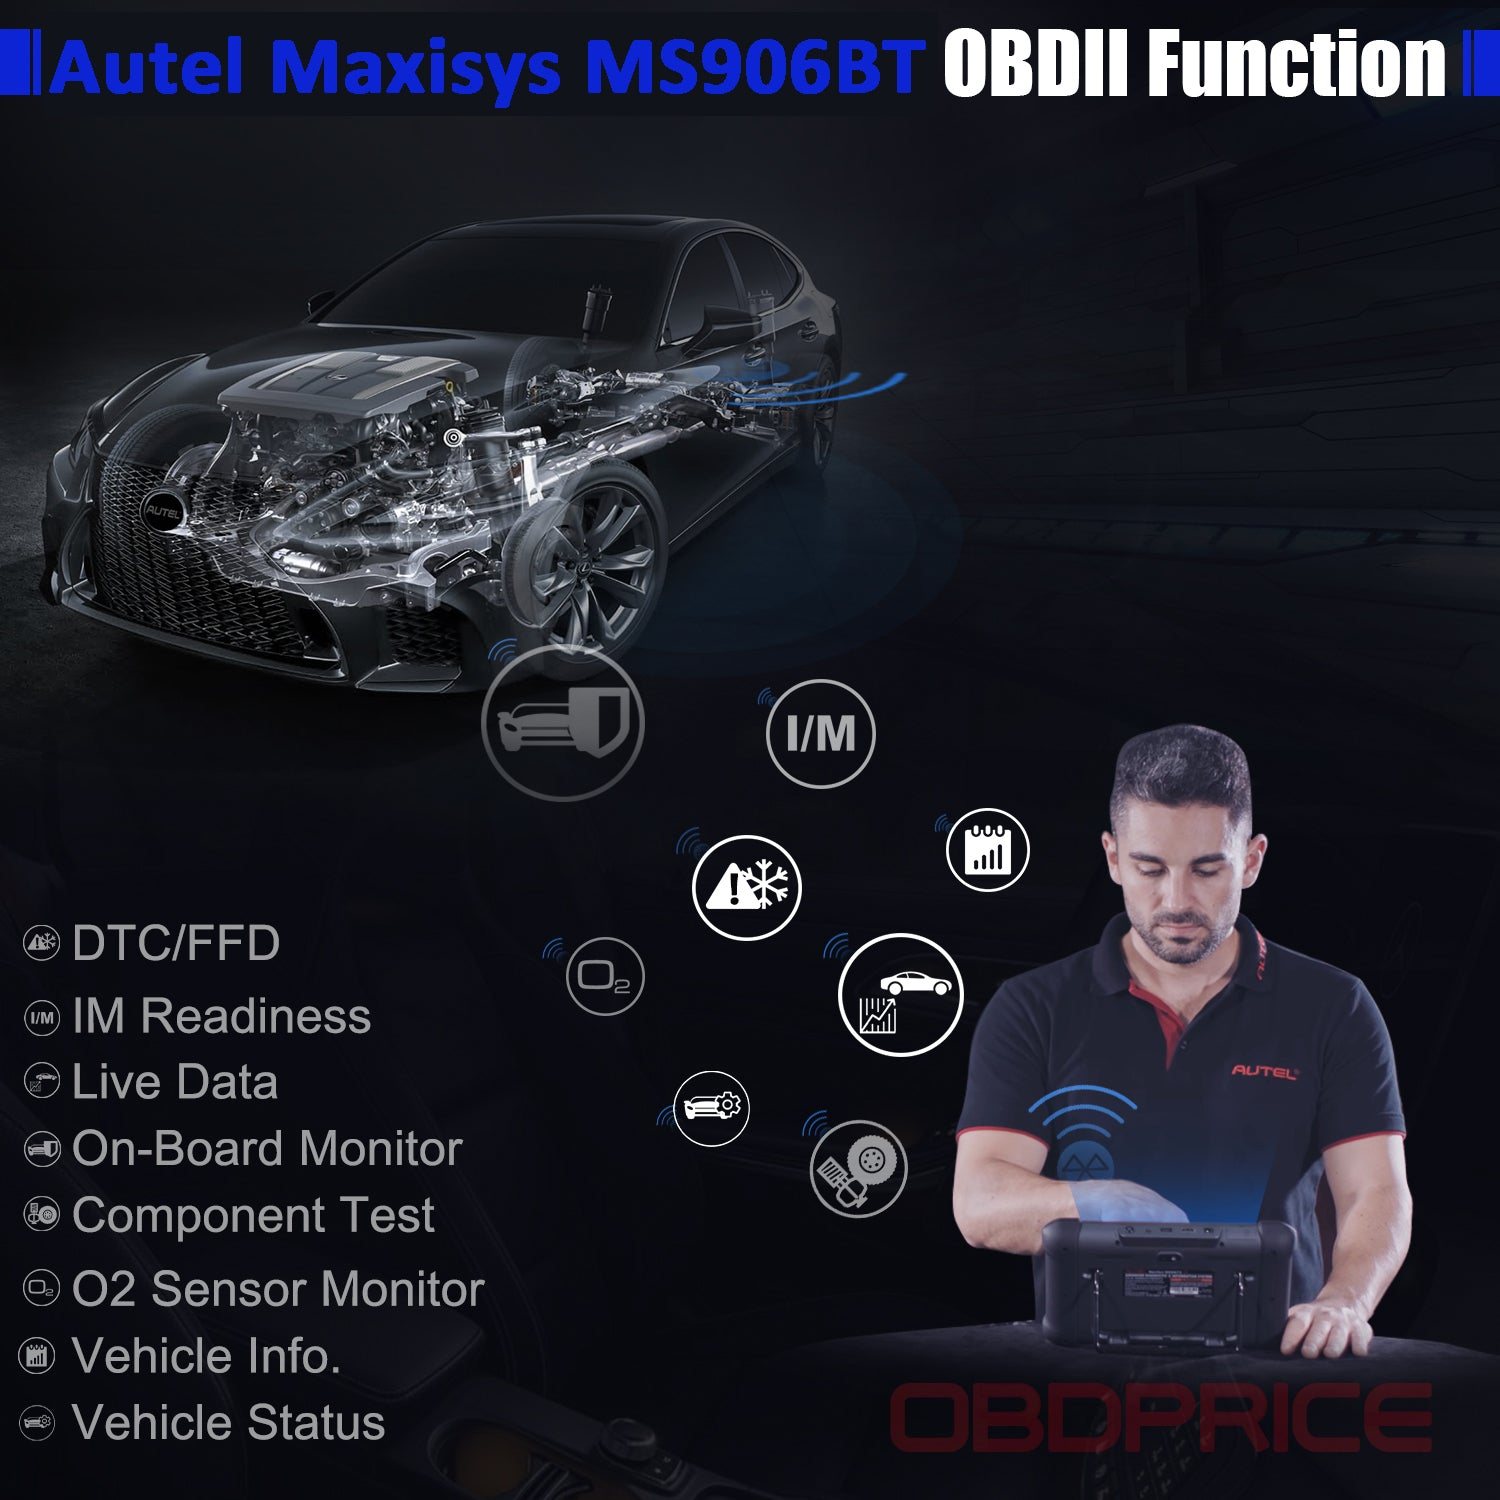 Autel Maxisys MS906BT Bluetooth OBD2 Diagnostic Tool complete obd2 functions